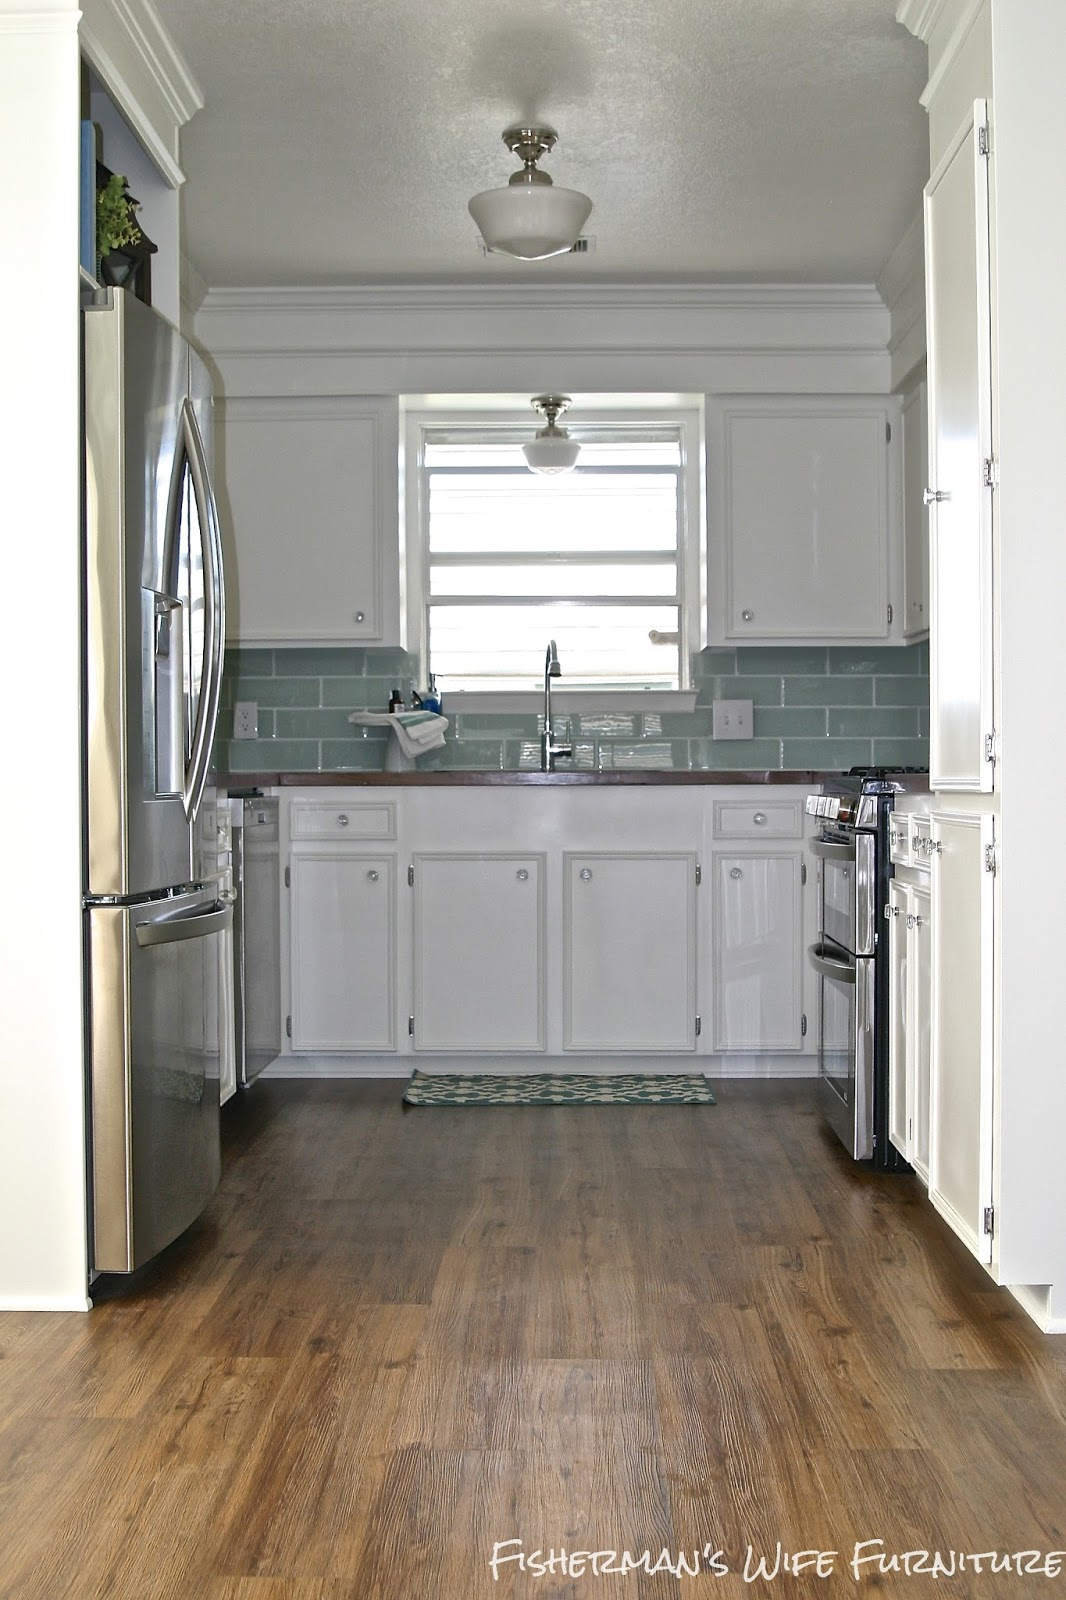 Small White Kitchen Makeover With Built In Fridge Enclosure By Kaylor Of  Fishermanu0027s Wife Furniture